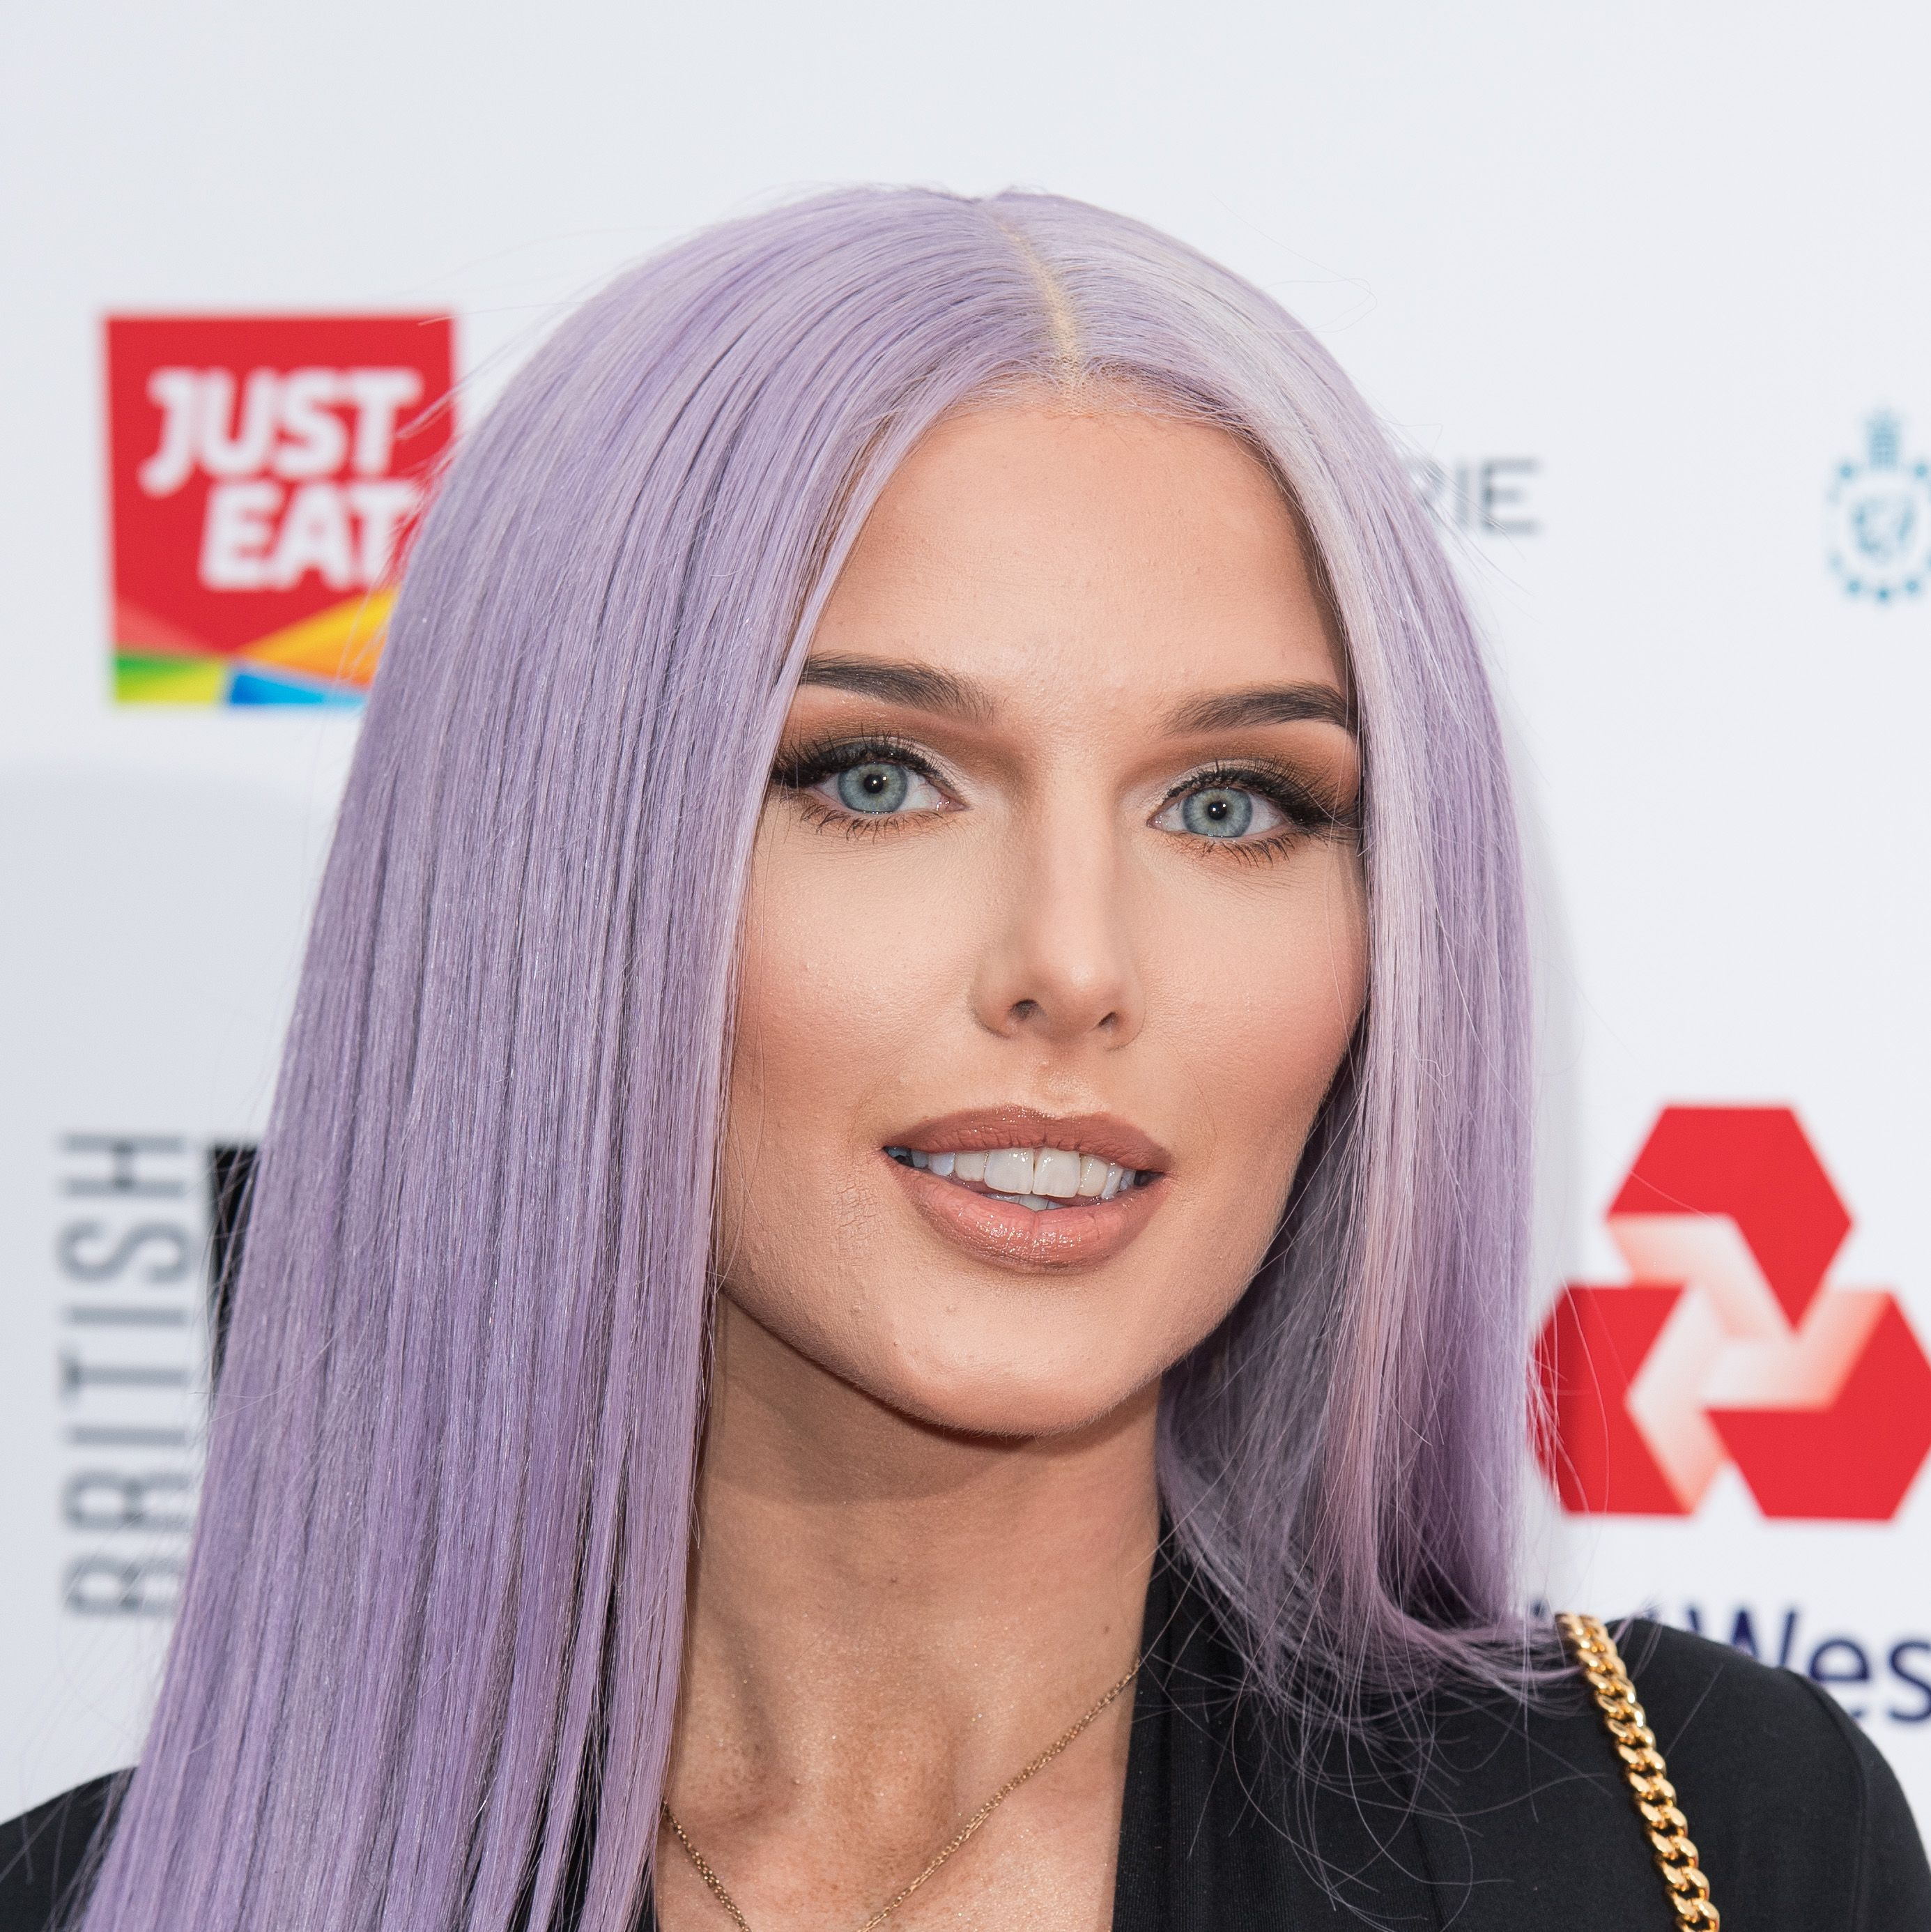 Coronation Street's Helen Flanagan is unrecognisable at British LGBT Awards along with Shirley Ballas and more